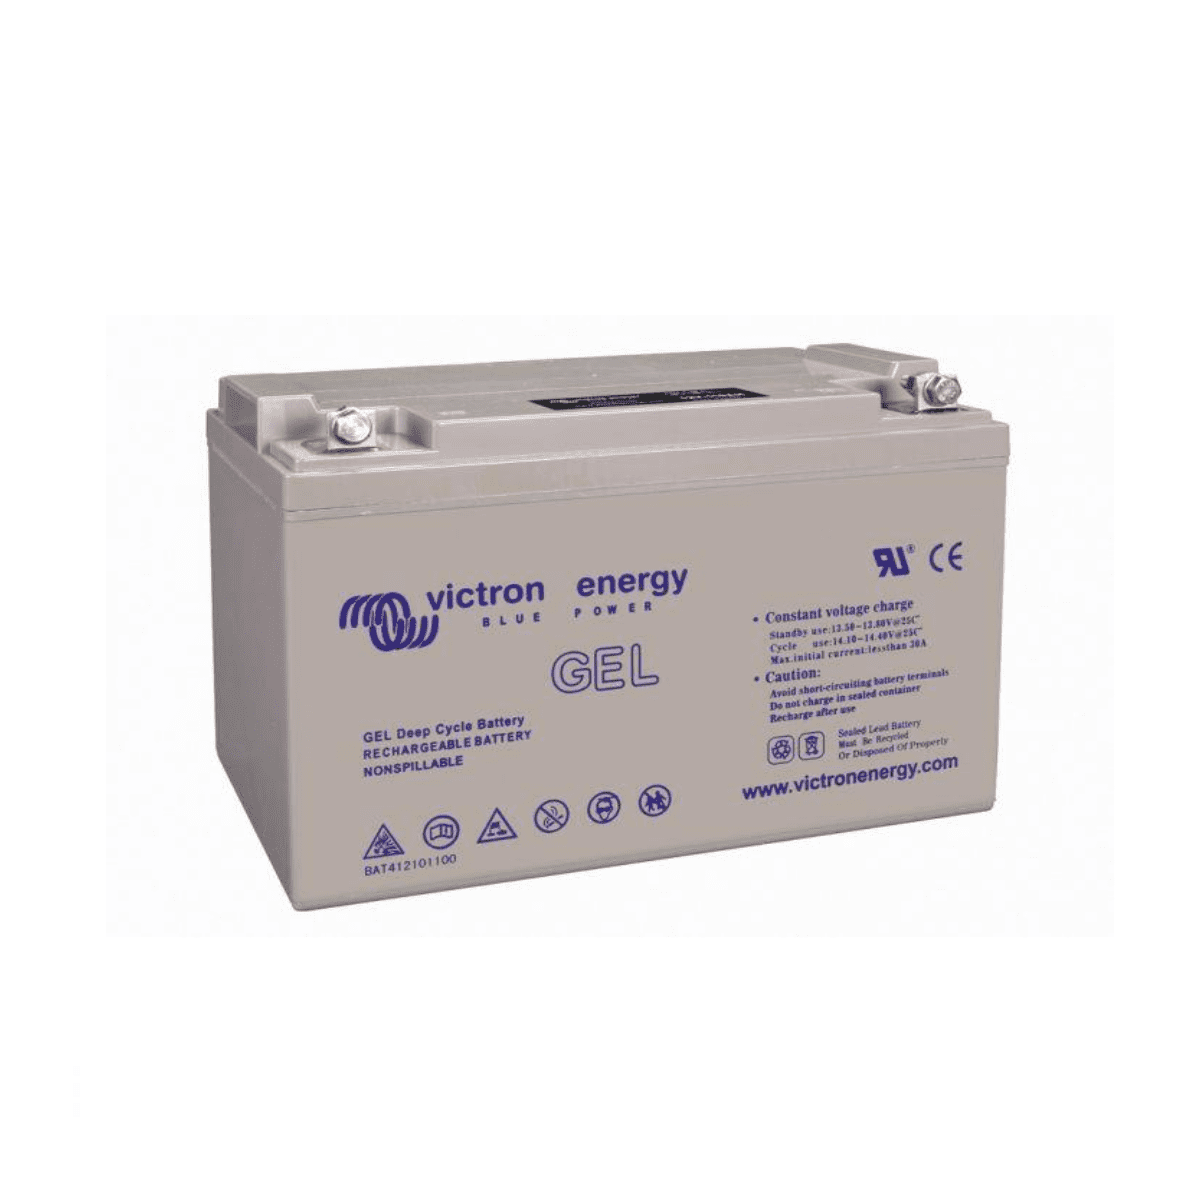 Victron 12V 165Ah GEL Deep Cycle Battery on Sale